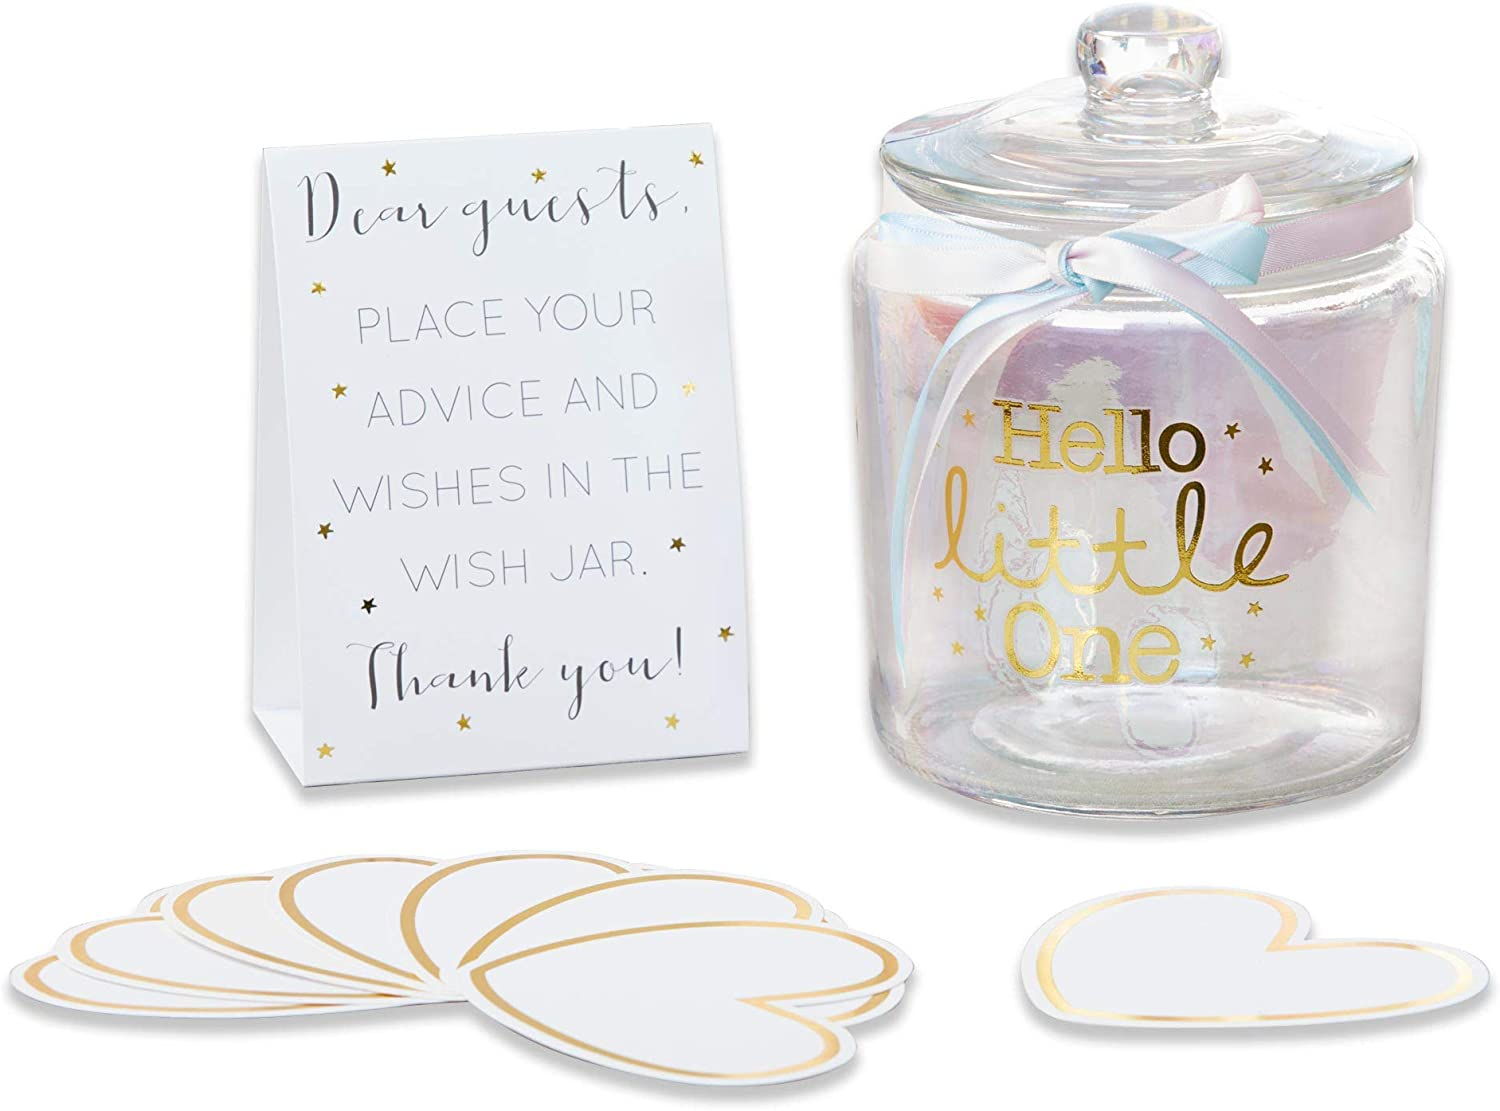 Kate Aspen Iridescent Baby Shower Wish Jar with 50 Heart Shaped Cards Guest Book, One Size, Clear